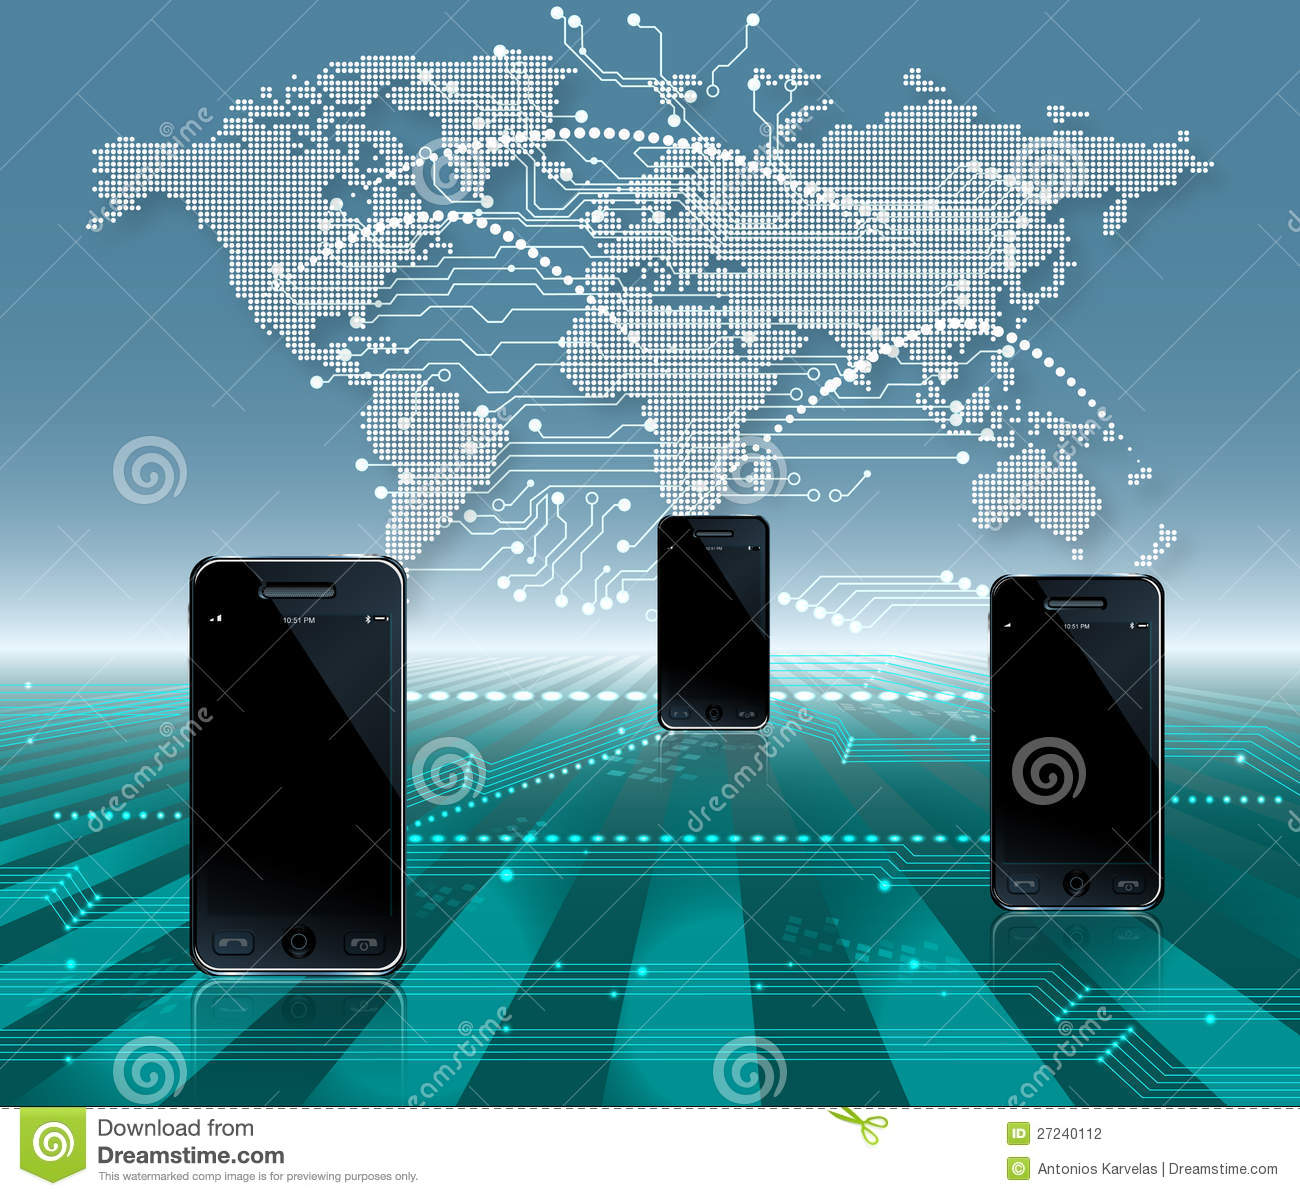 Unlimited International Cell Phone Plans